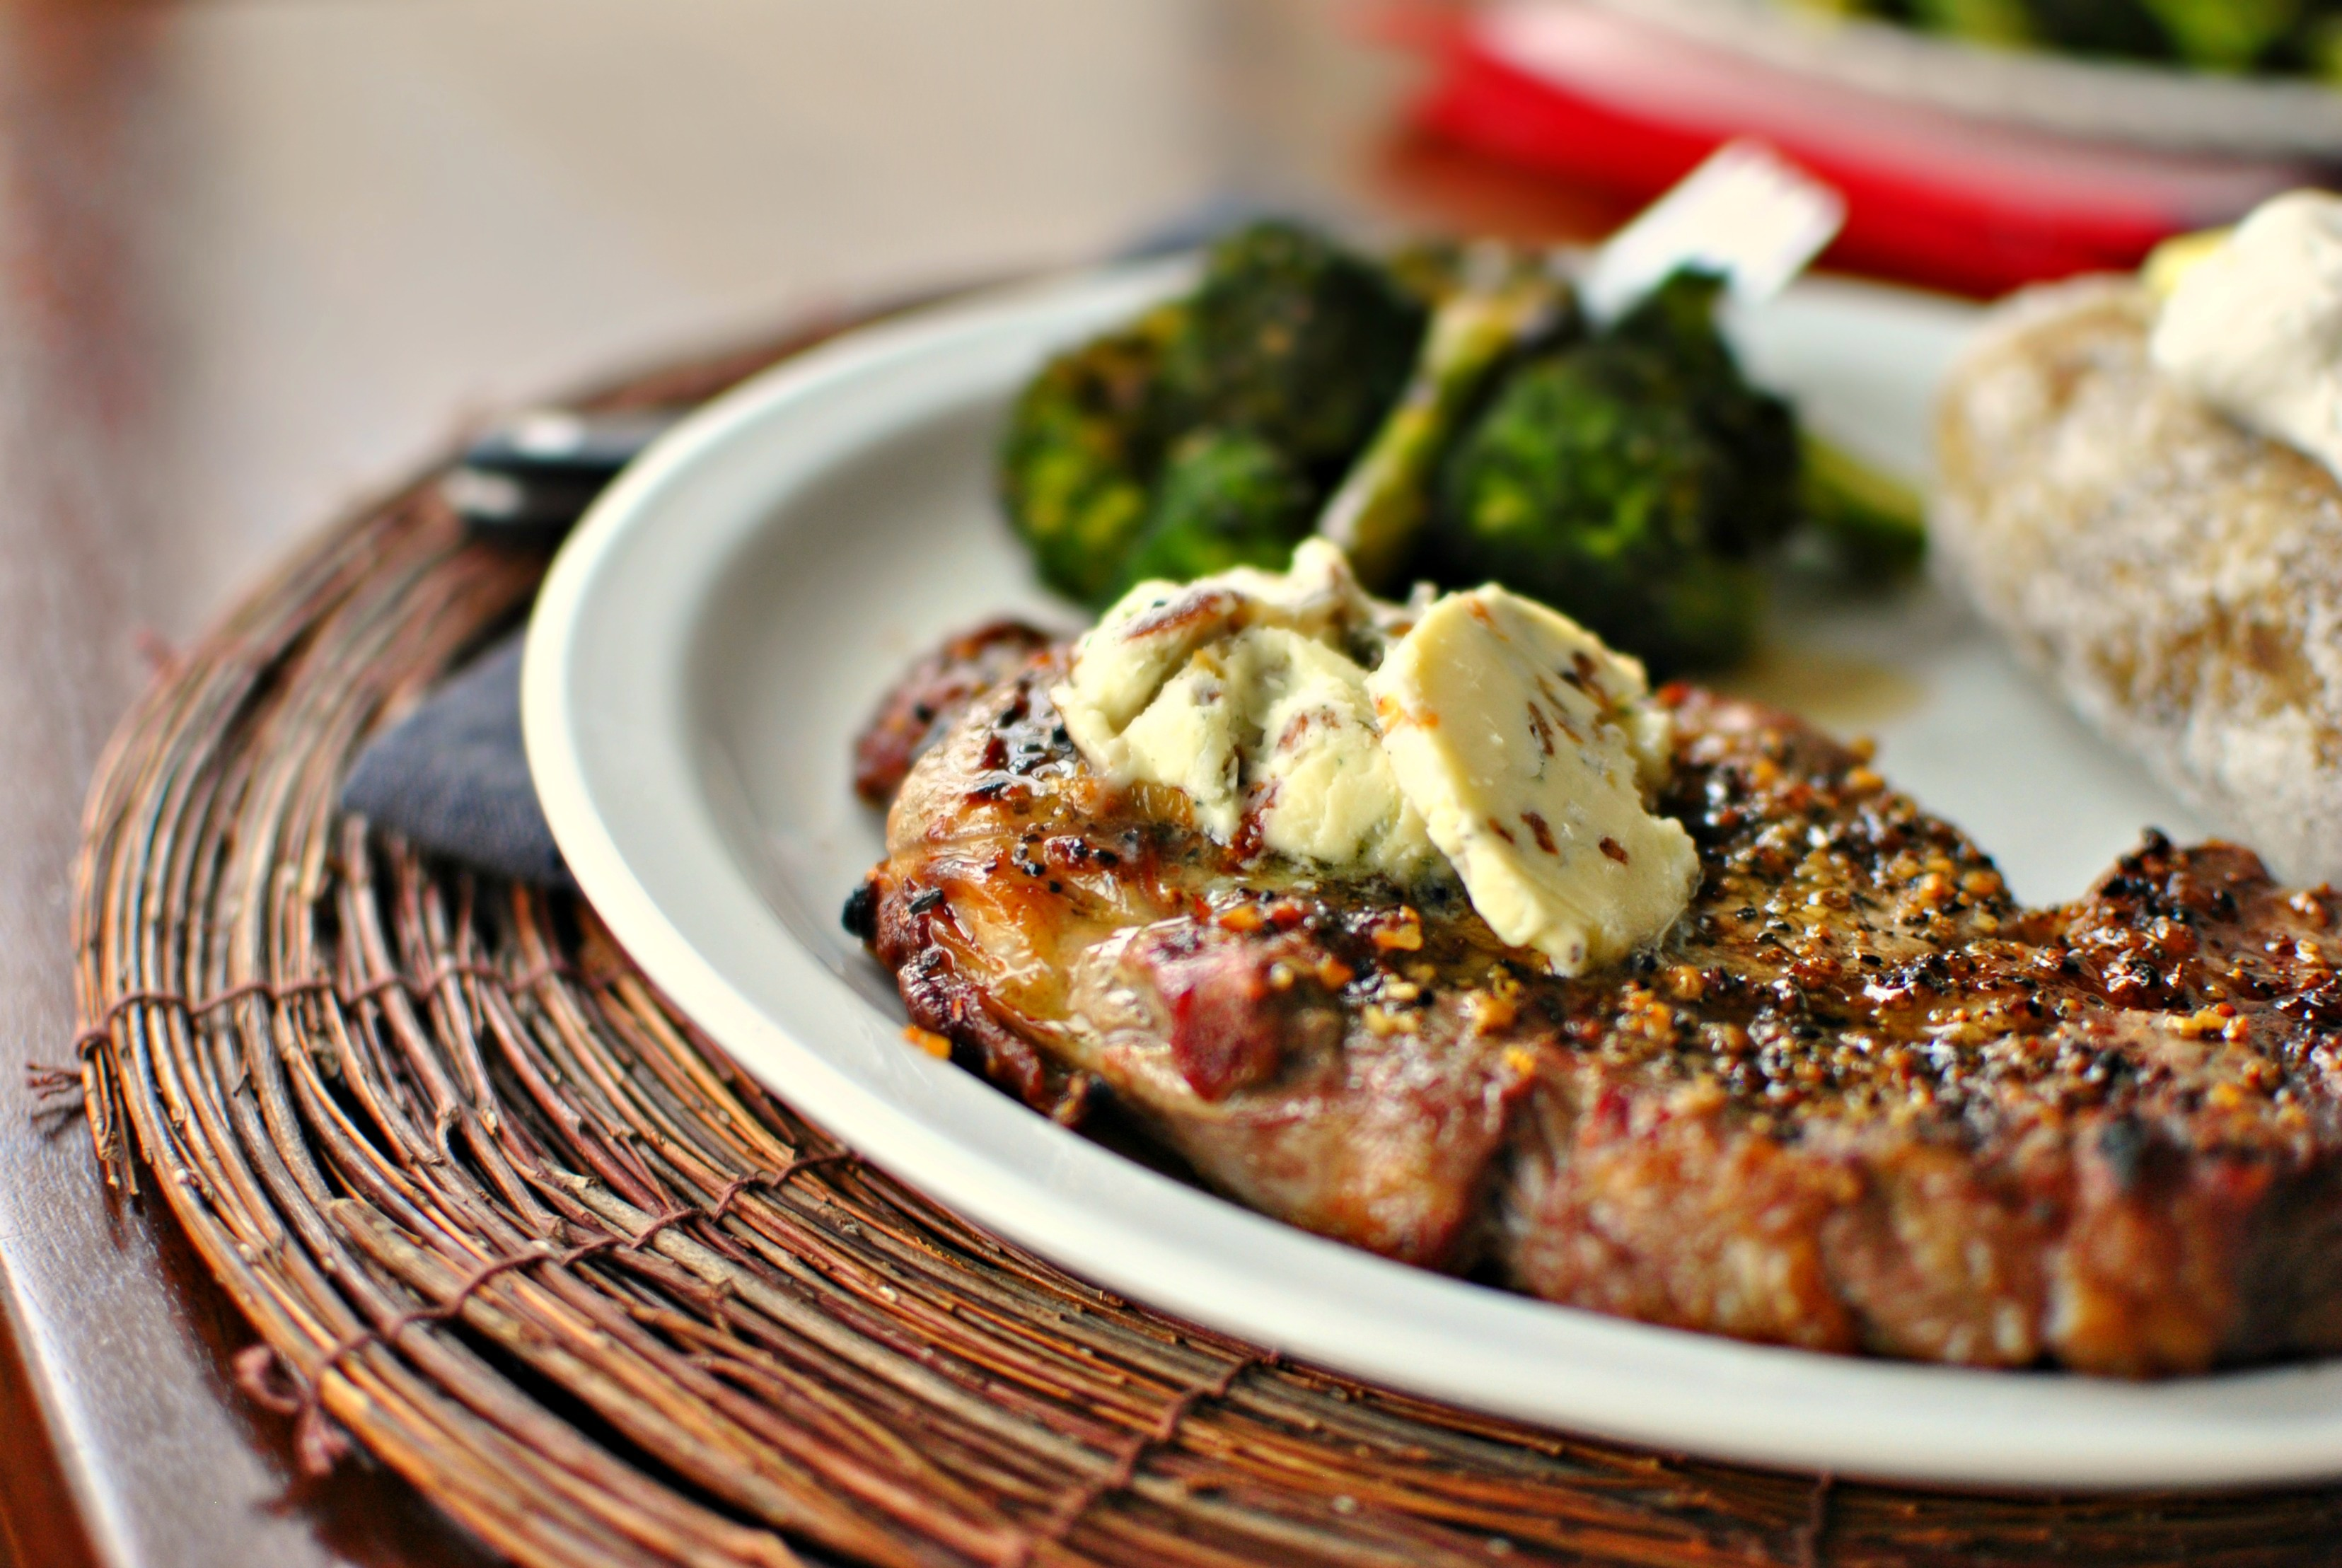 Ribeye with caramelized shallot blue cheese butter